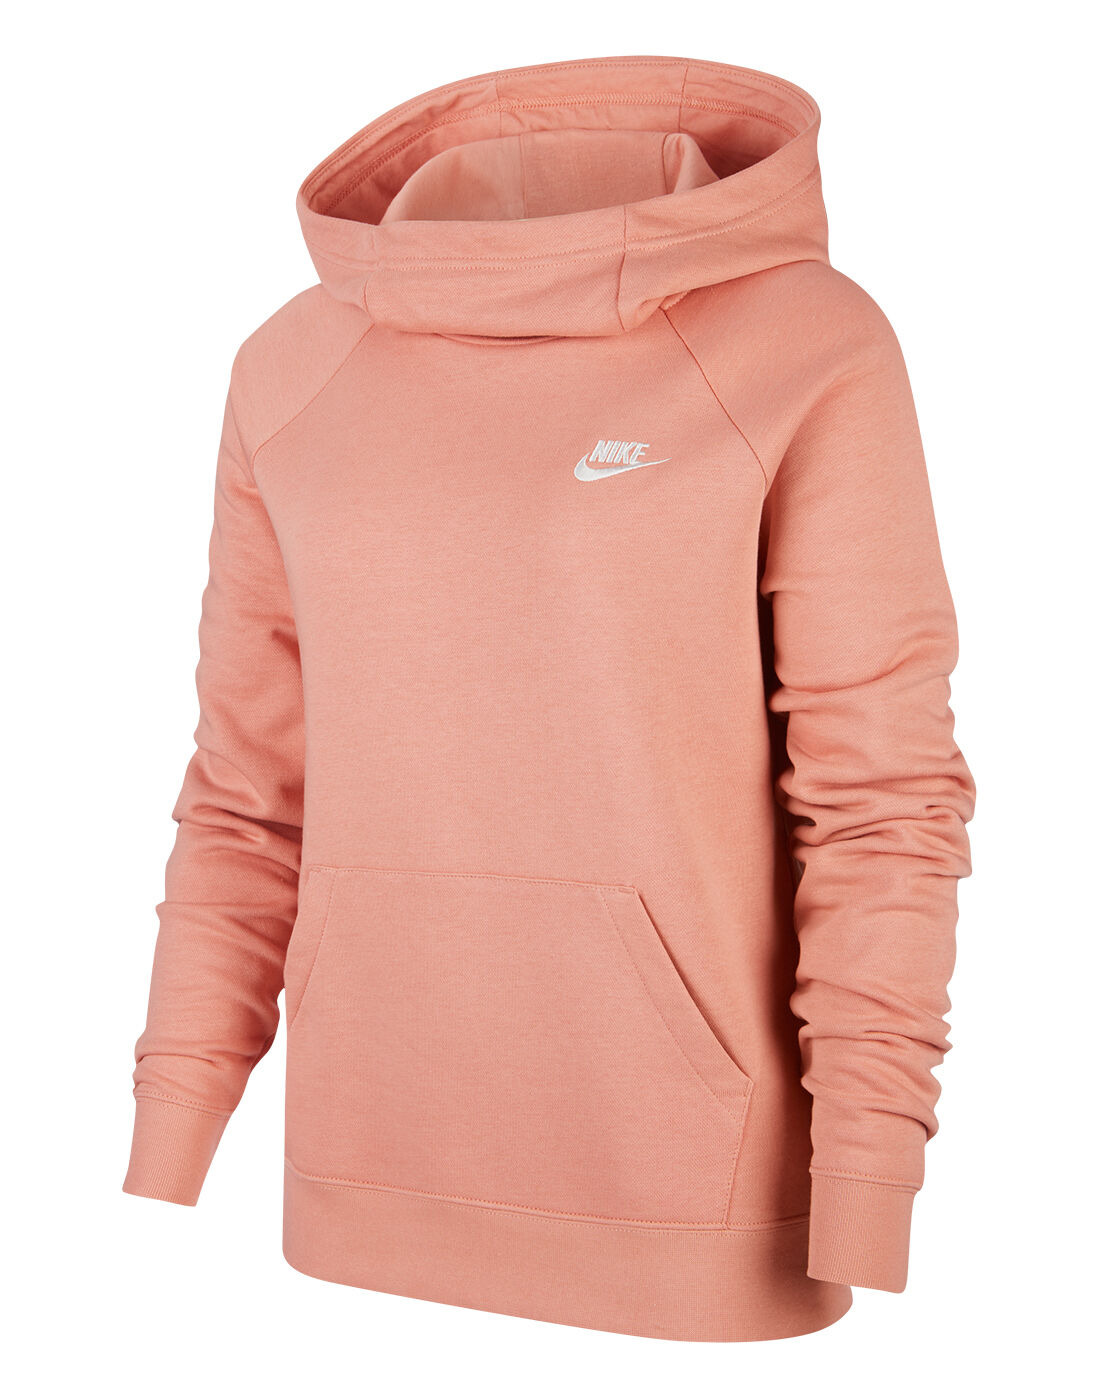 Women's Pink Nike Funnel Hoodie | Life Style Sports